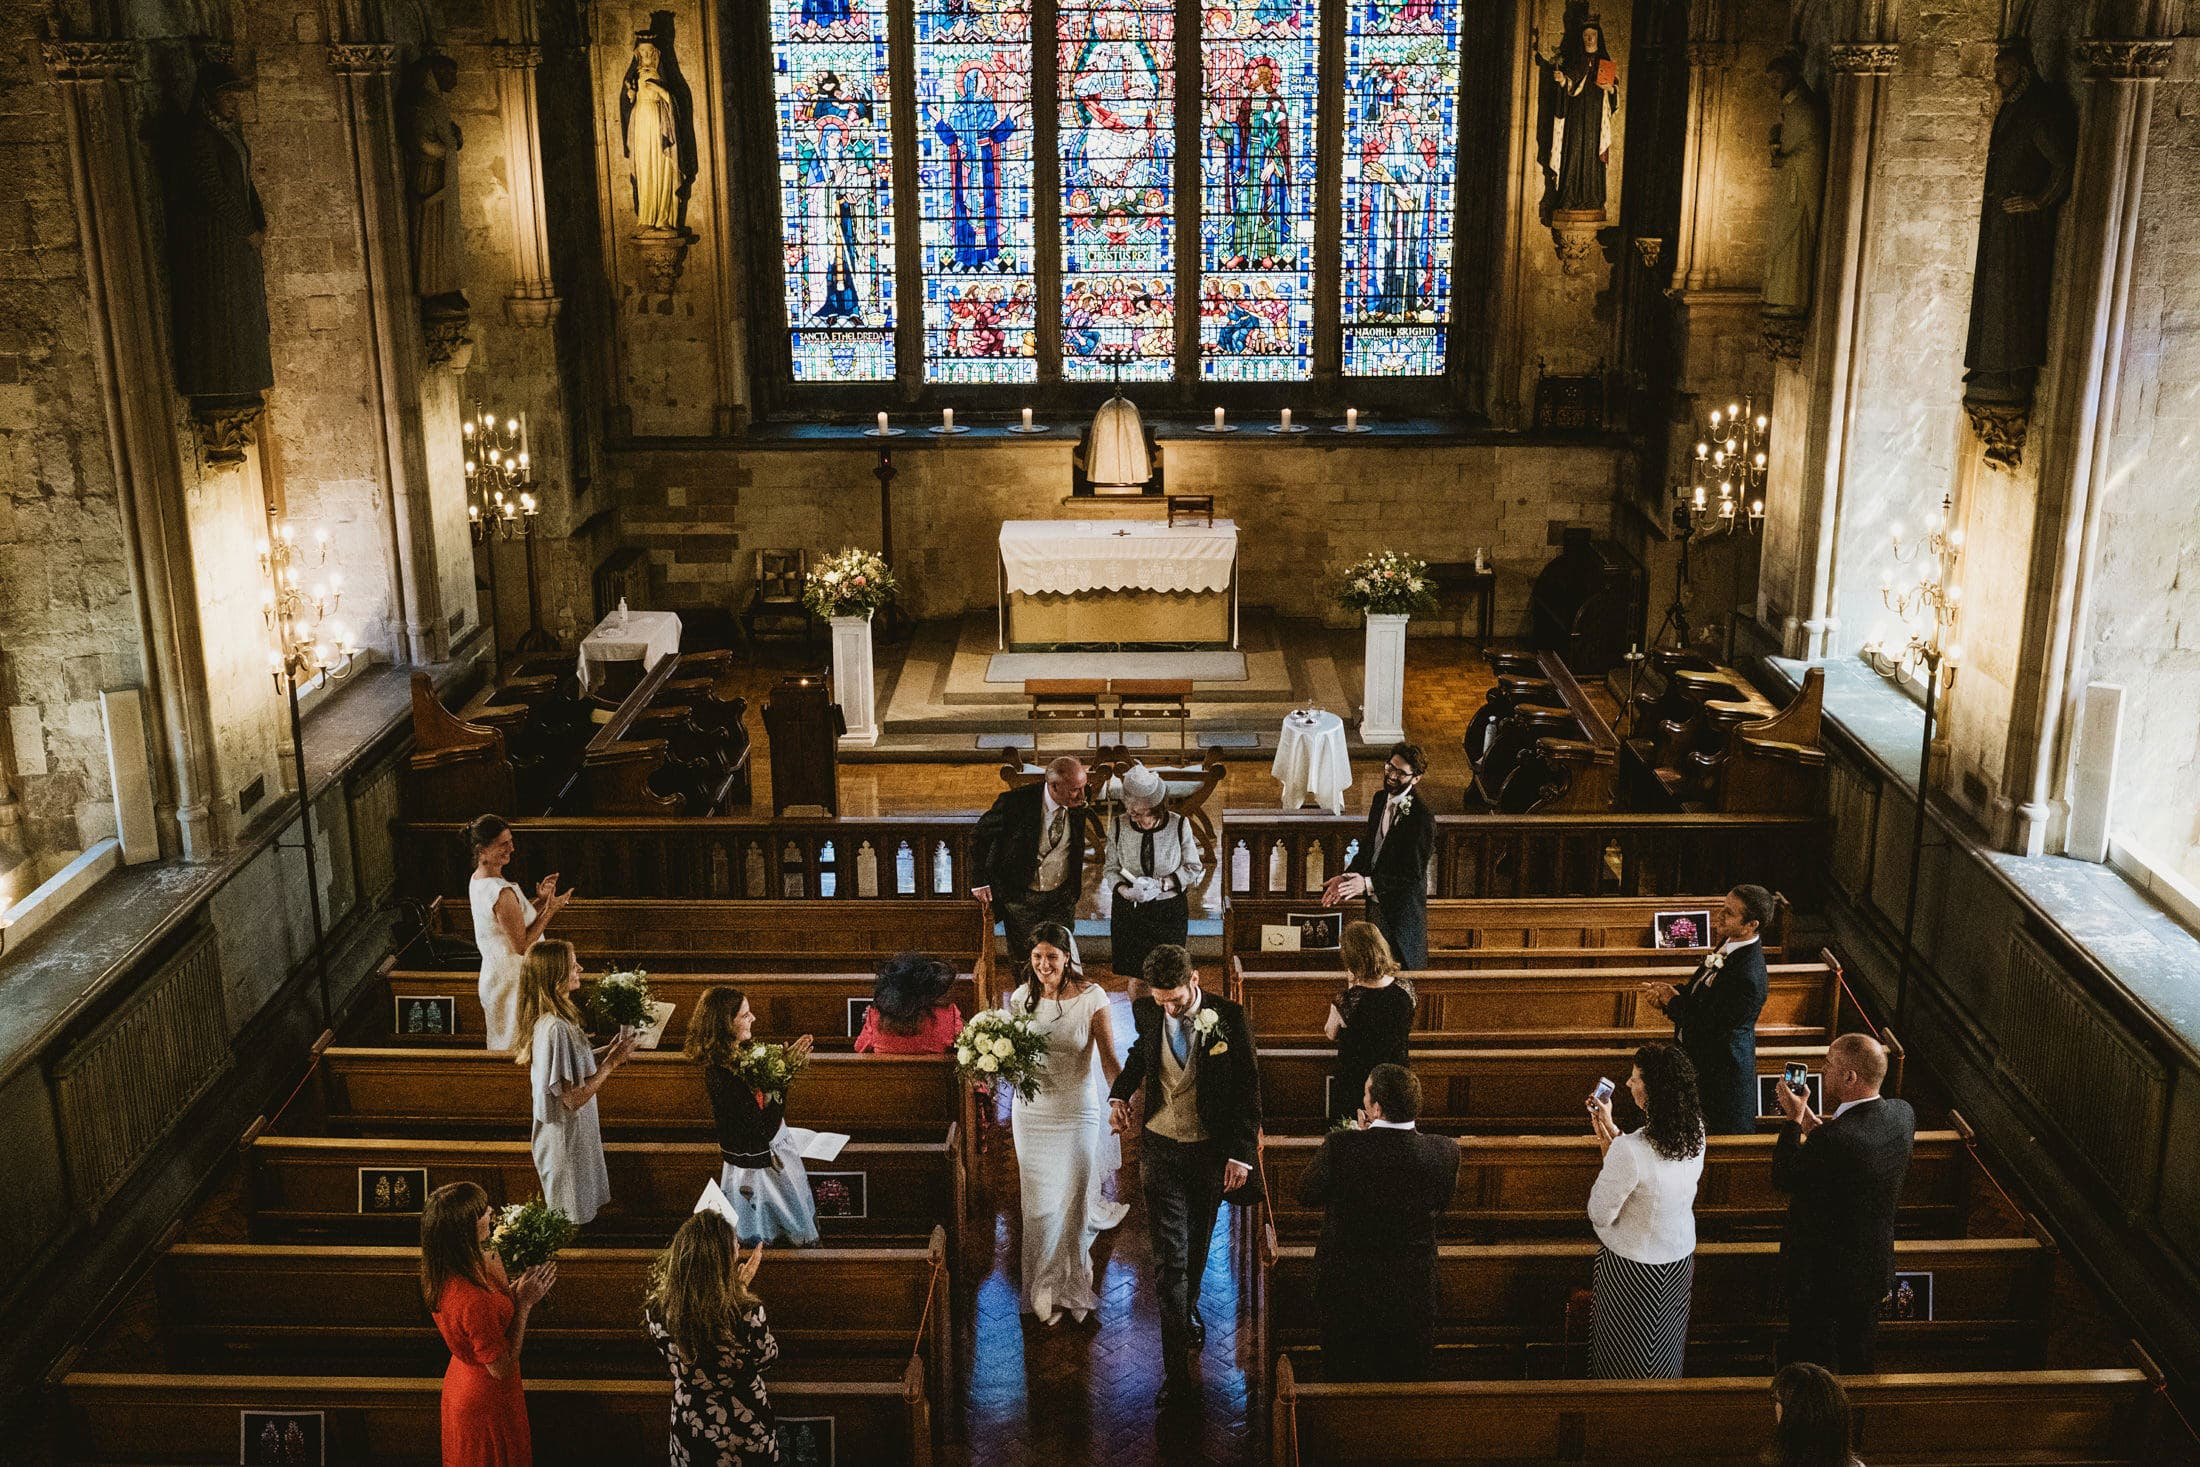 Bride and groom walk back down the aisle as husband and wife as their guests applaud. Documentary wedding image photographed from church balcony